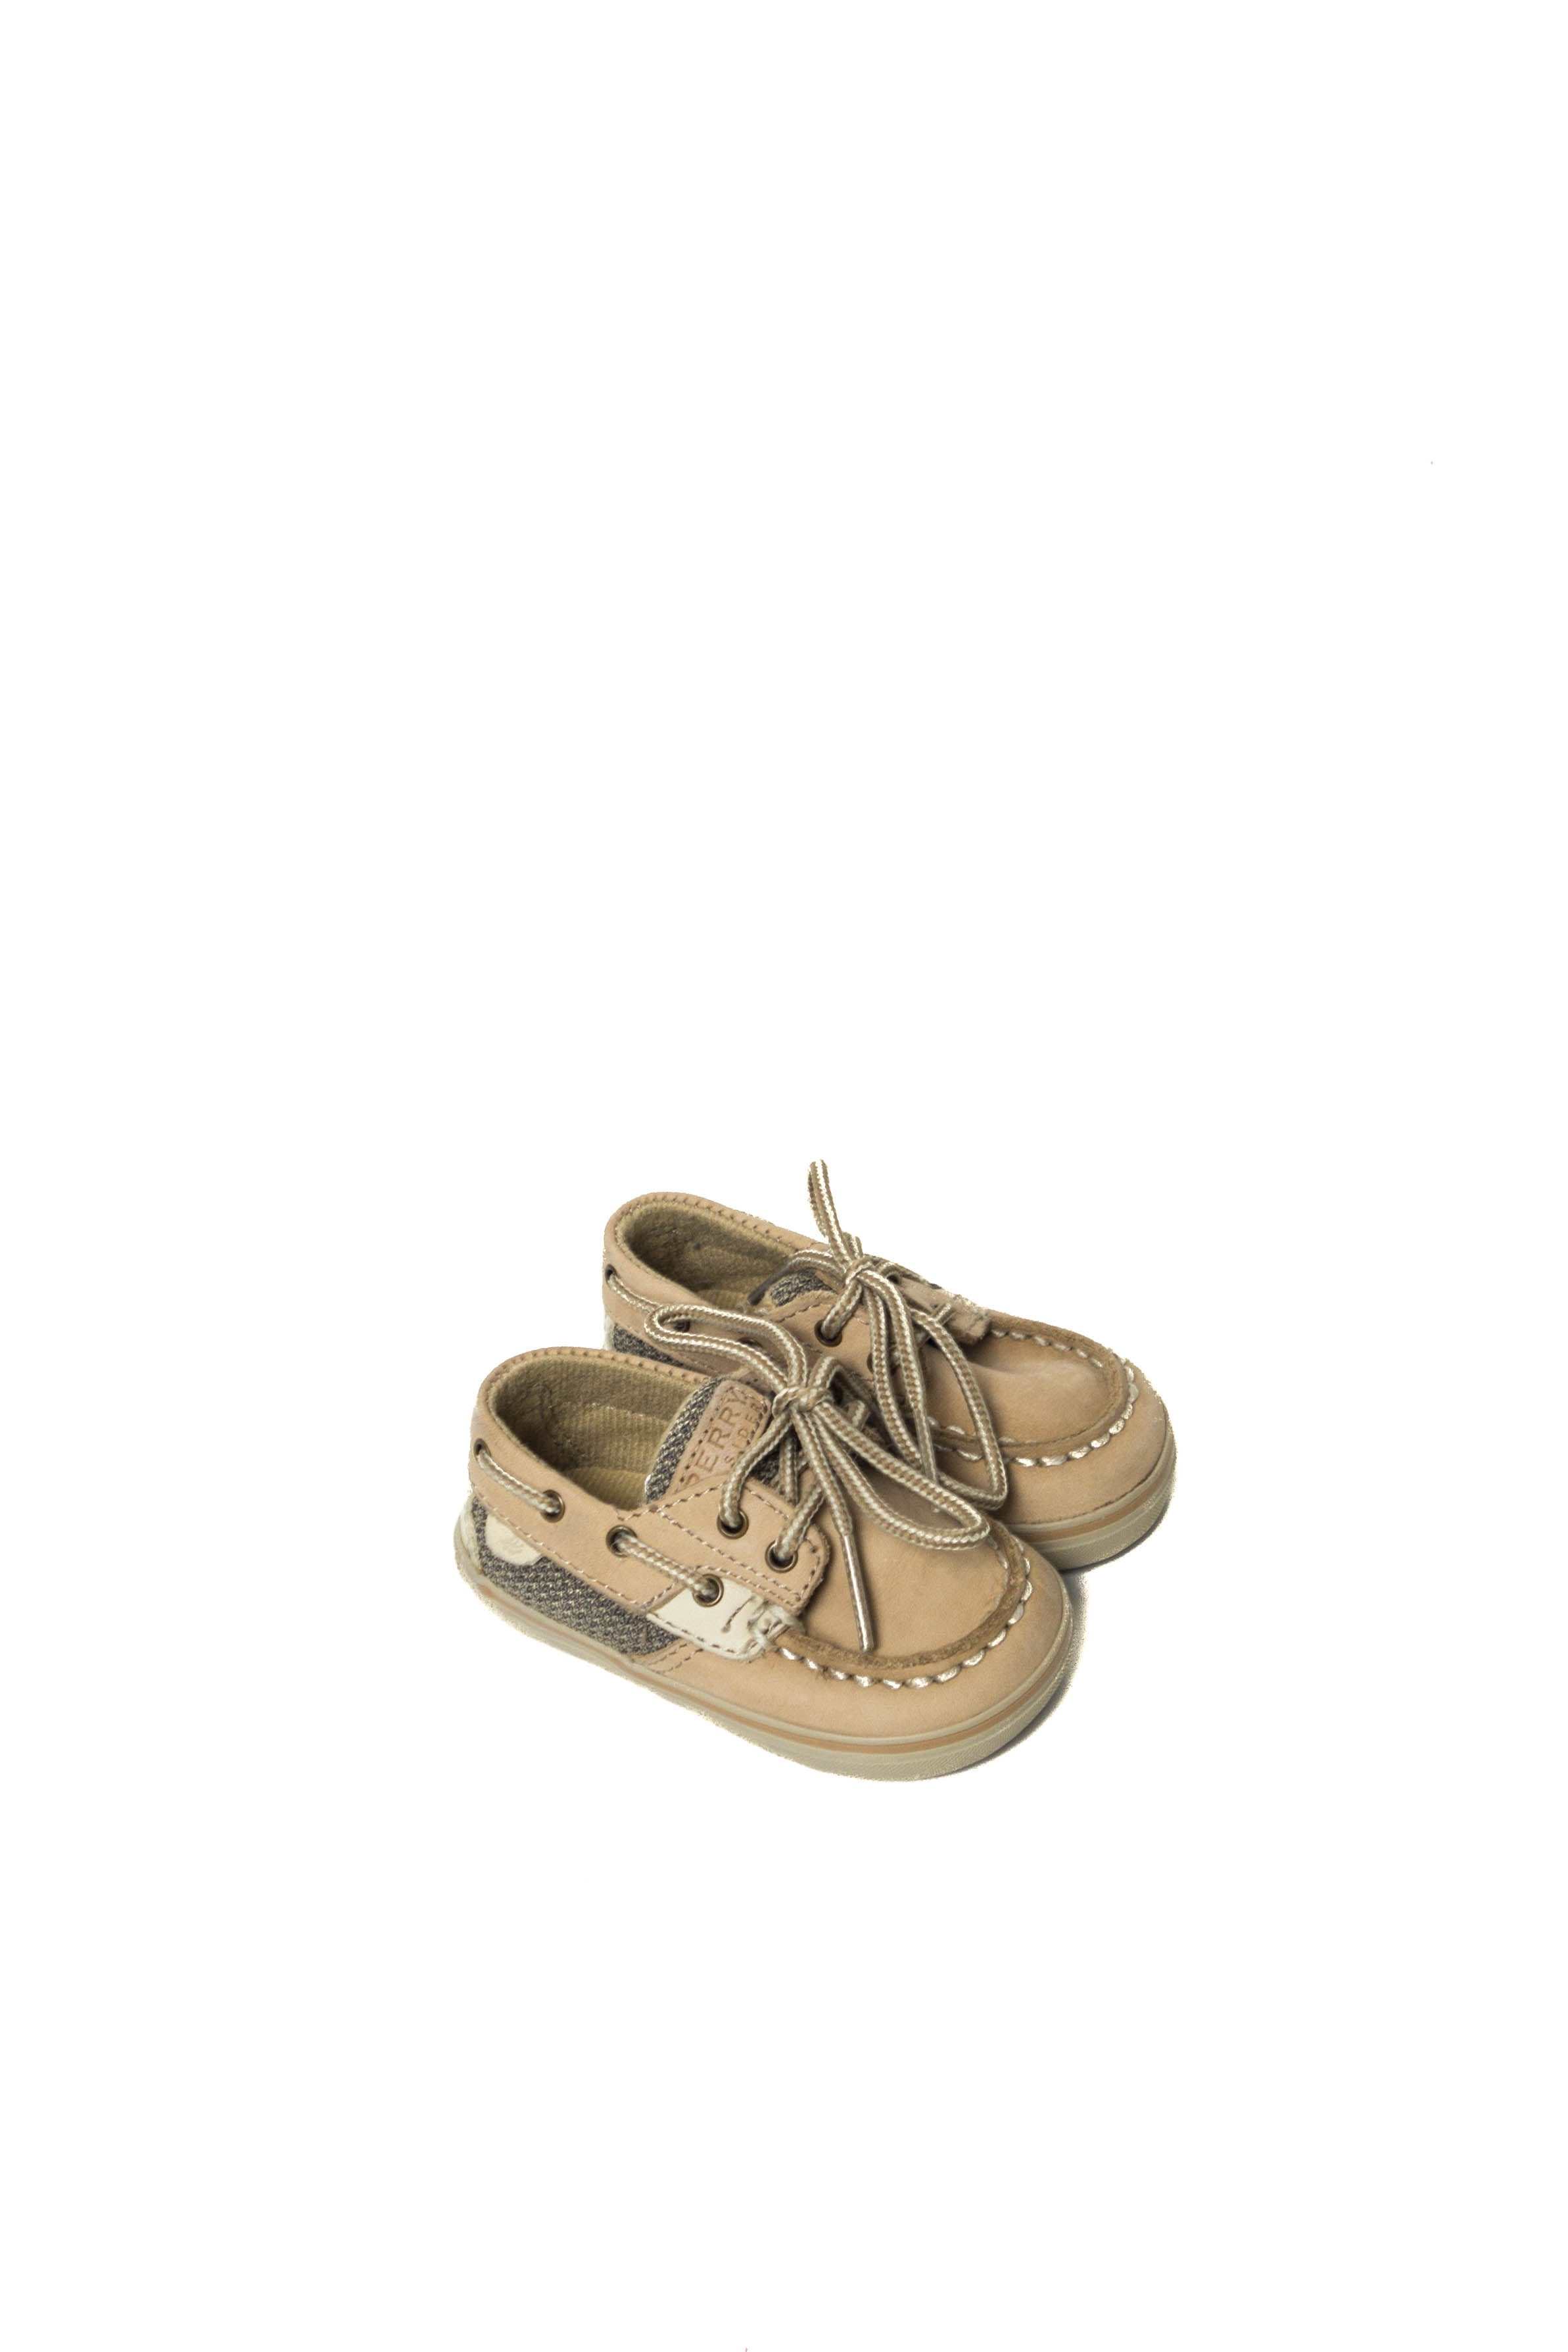 10002310 Sperry Baby~Shoes 3-6M (US 2) at Retykle